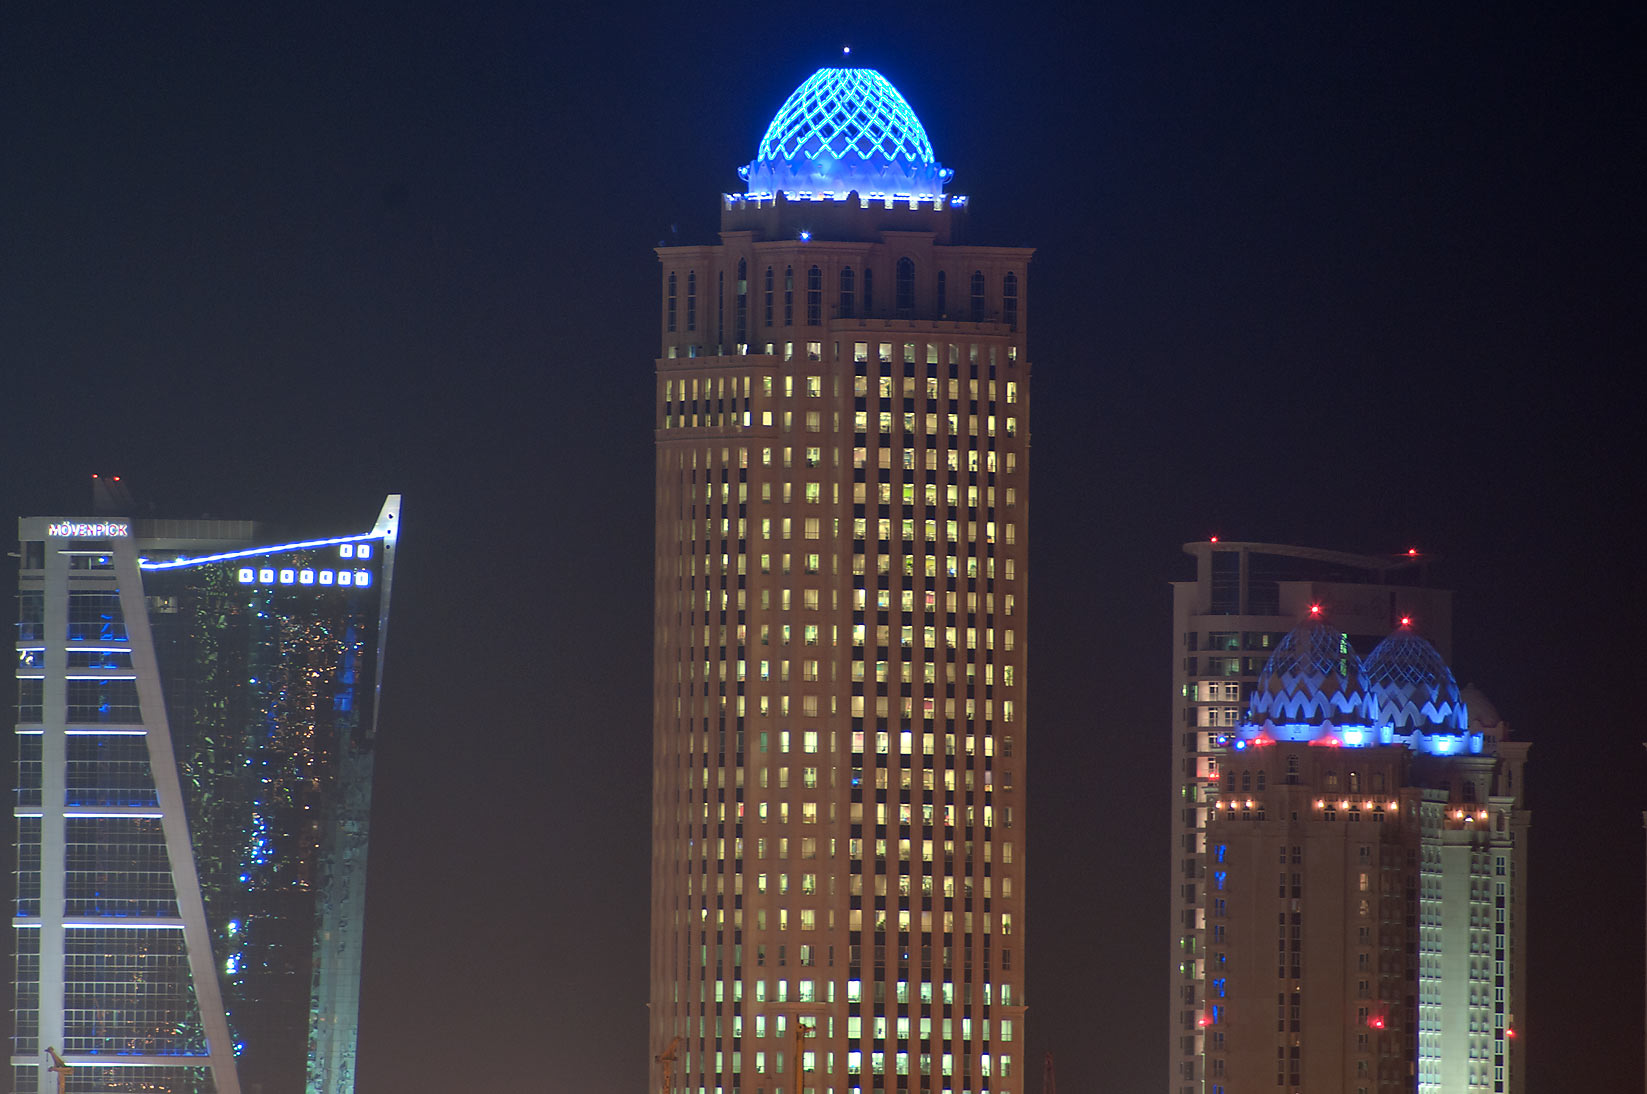 Moevenpick Hotel and Qtel Tower, view from Corniche. Doha, Qatar